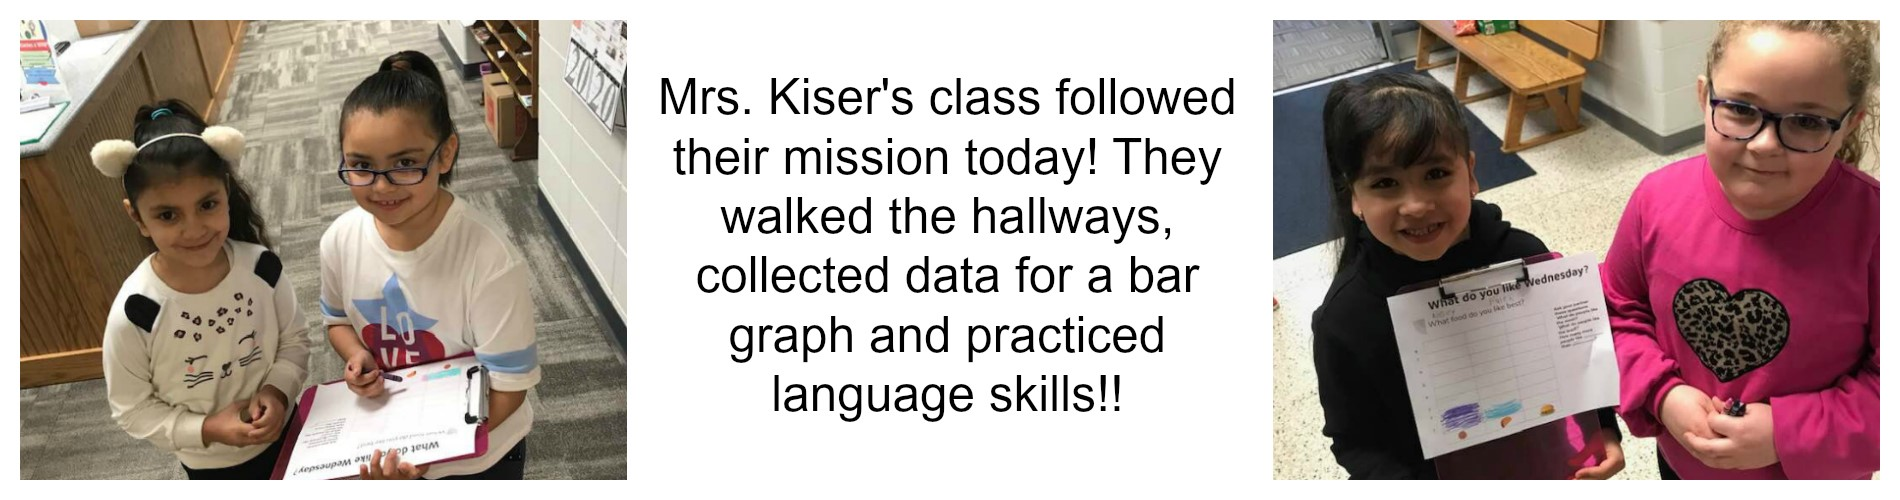 Mrs. Kiser's class on a mission